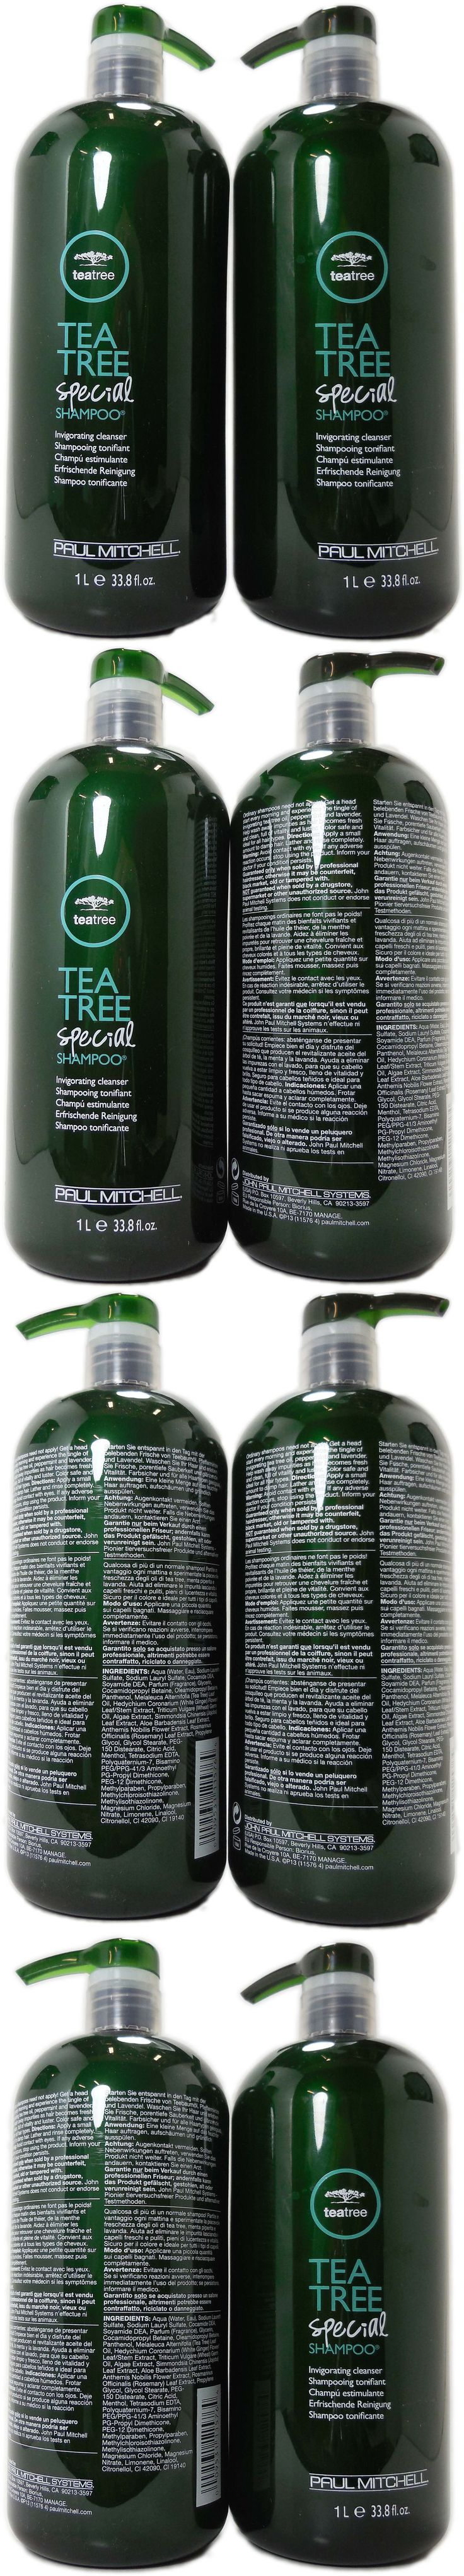 Shampoos and Conditioners: Paul Mitchell Tea Tree Special Shampoo Liter 33.8Oz Each Pack Of 2 -> BUY IT NOW ONLY: $59.71 on eBay!